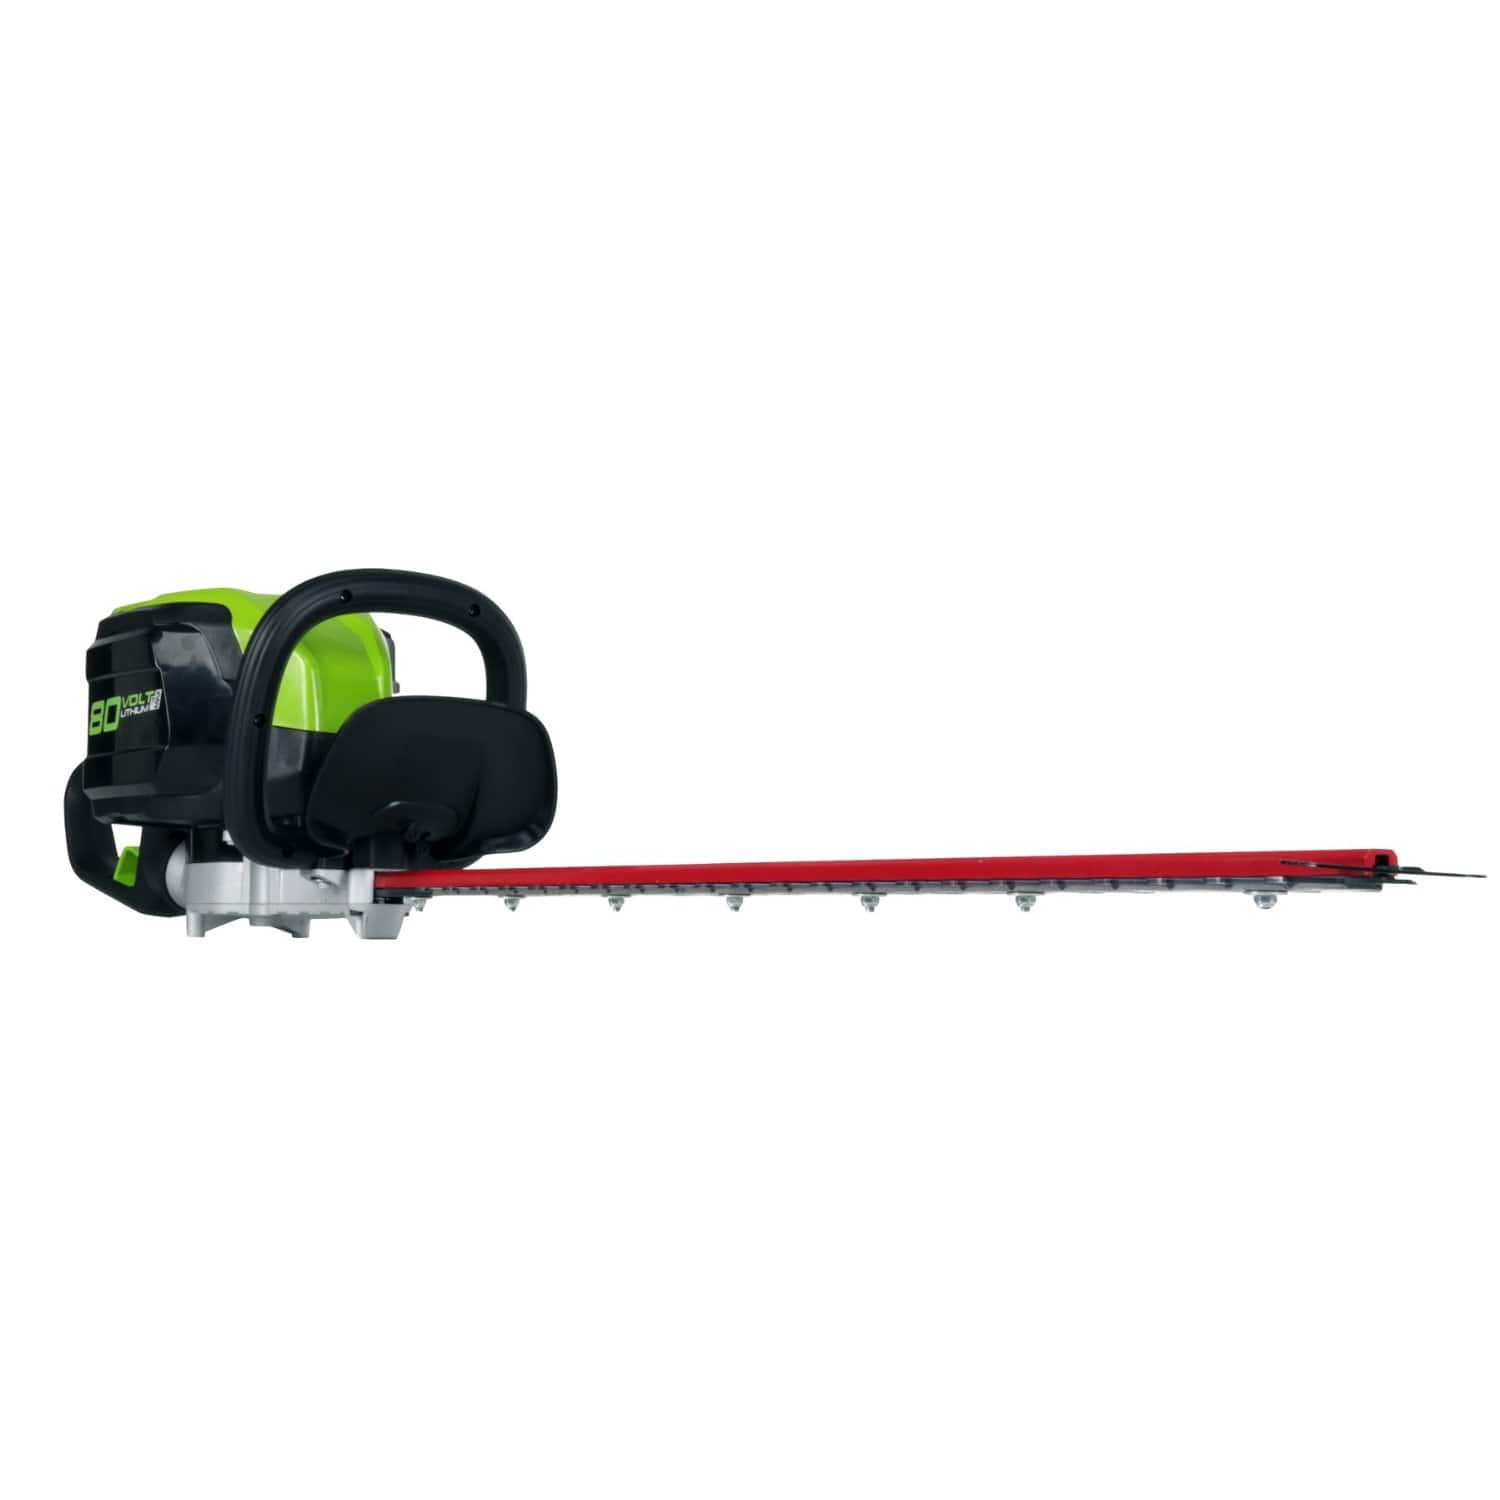 """GreenWorks Pro 80V Tools: Cordless Leaf Blower 500CFM w/ Battery + Charger $186, 16"""" String Trimmer w/ Battery & Charger $169 + Free Shipping"""